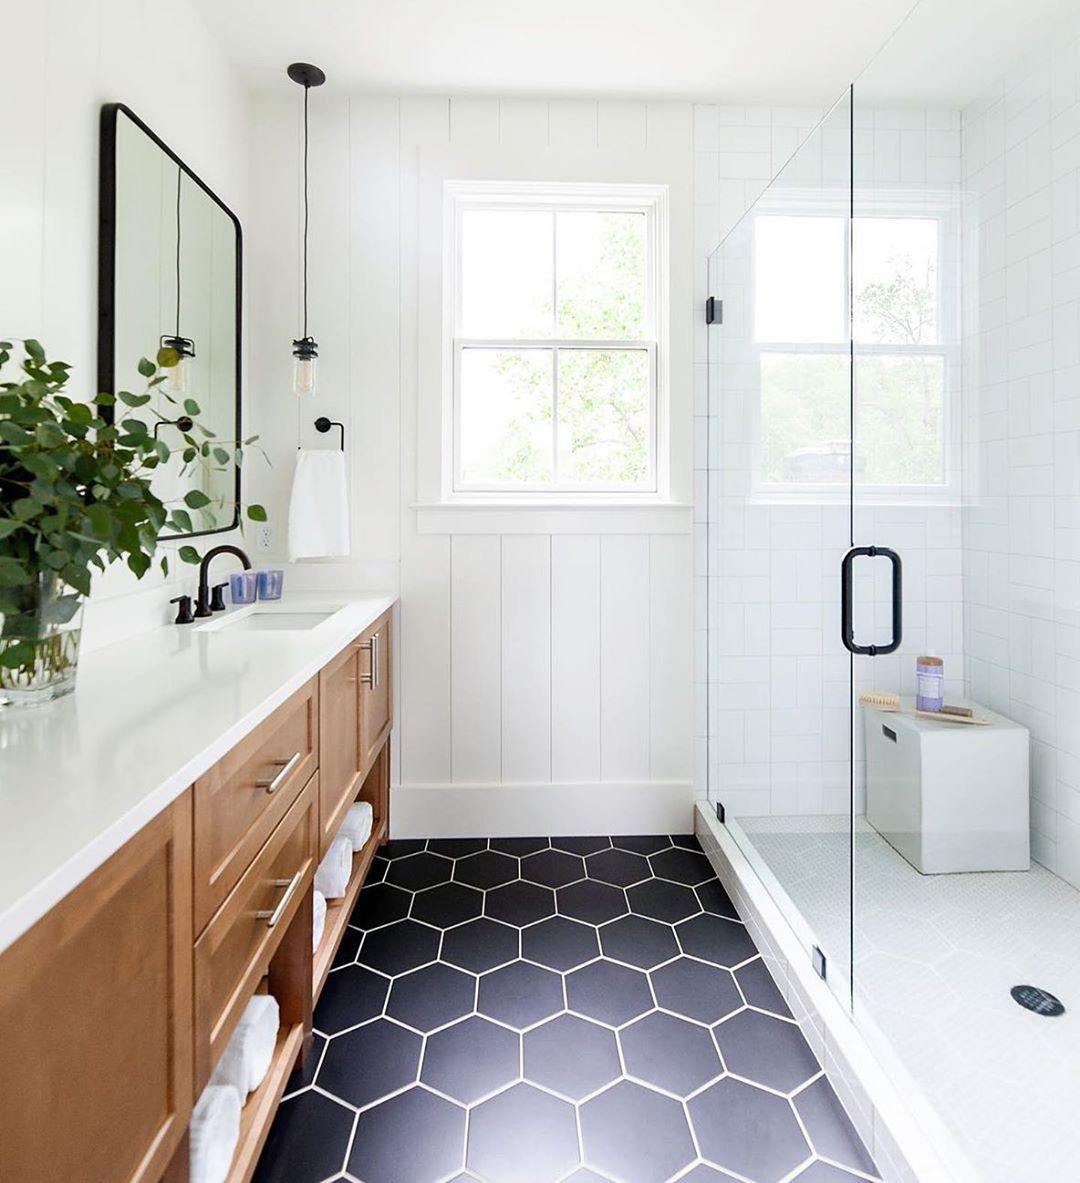 """The Tile Shop on Instagram: """"Can we talk about how gorgeous this bathroom is? We love the combination of white walls, black hex tiles and wood cabinetry!  Design by…"""" #blackwhitebathrooms"""